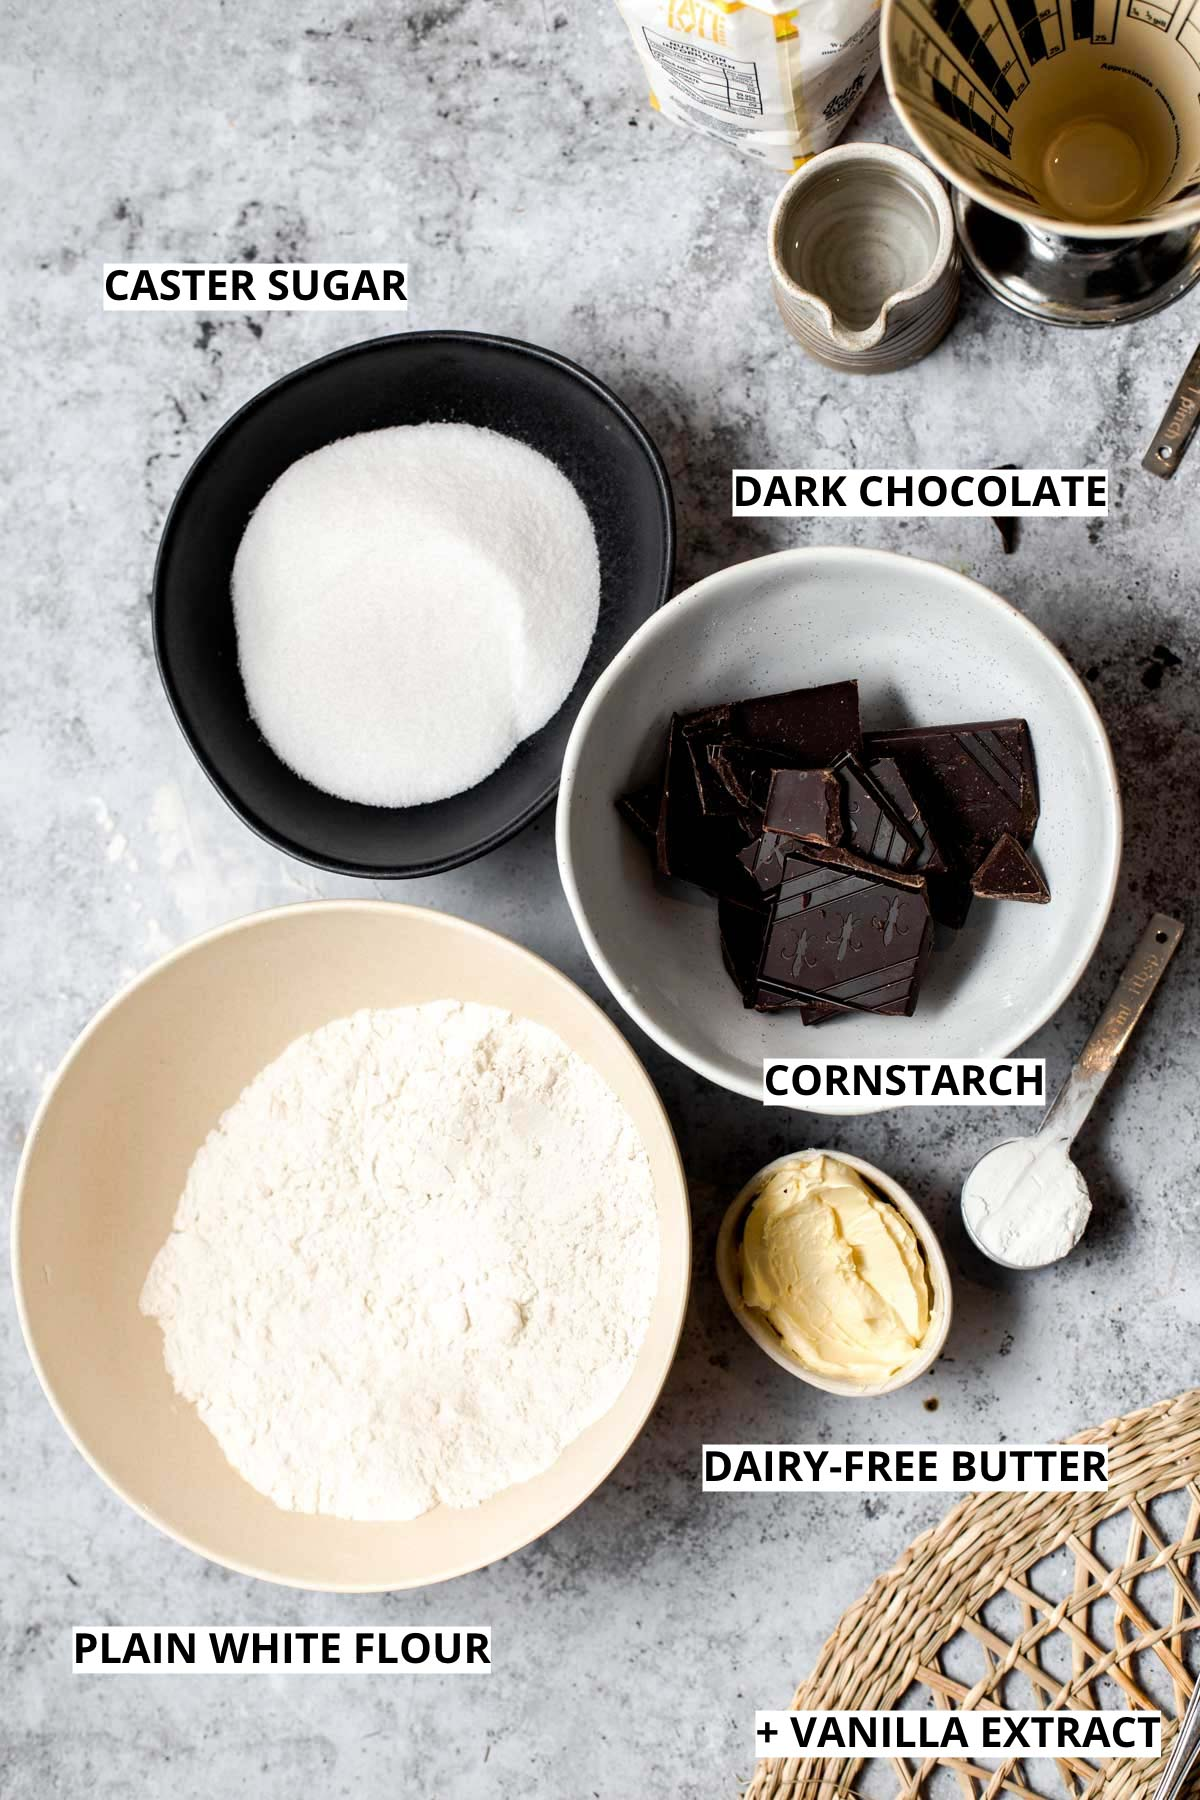 The ingredients needed to bake vegan shortbread cookies.